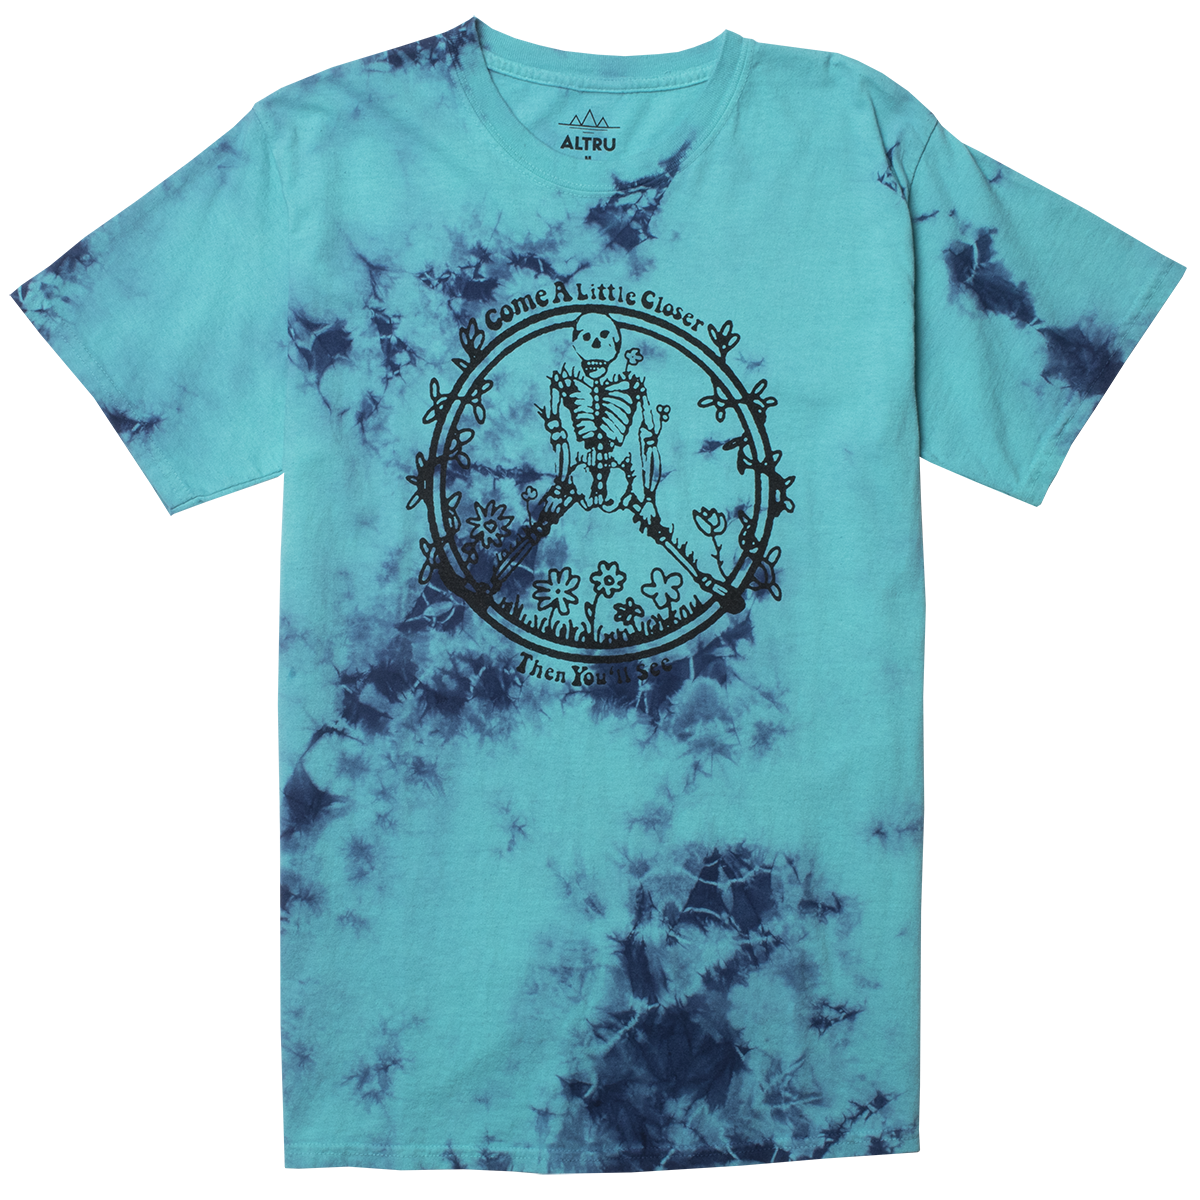 Altru Apparel Come Closer Tie-Dye Tee